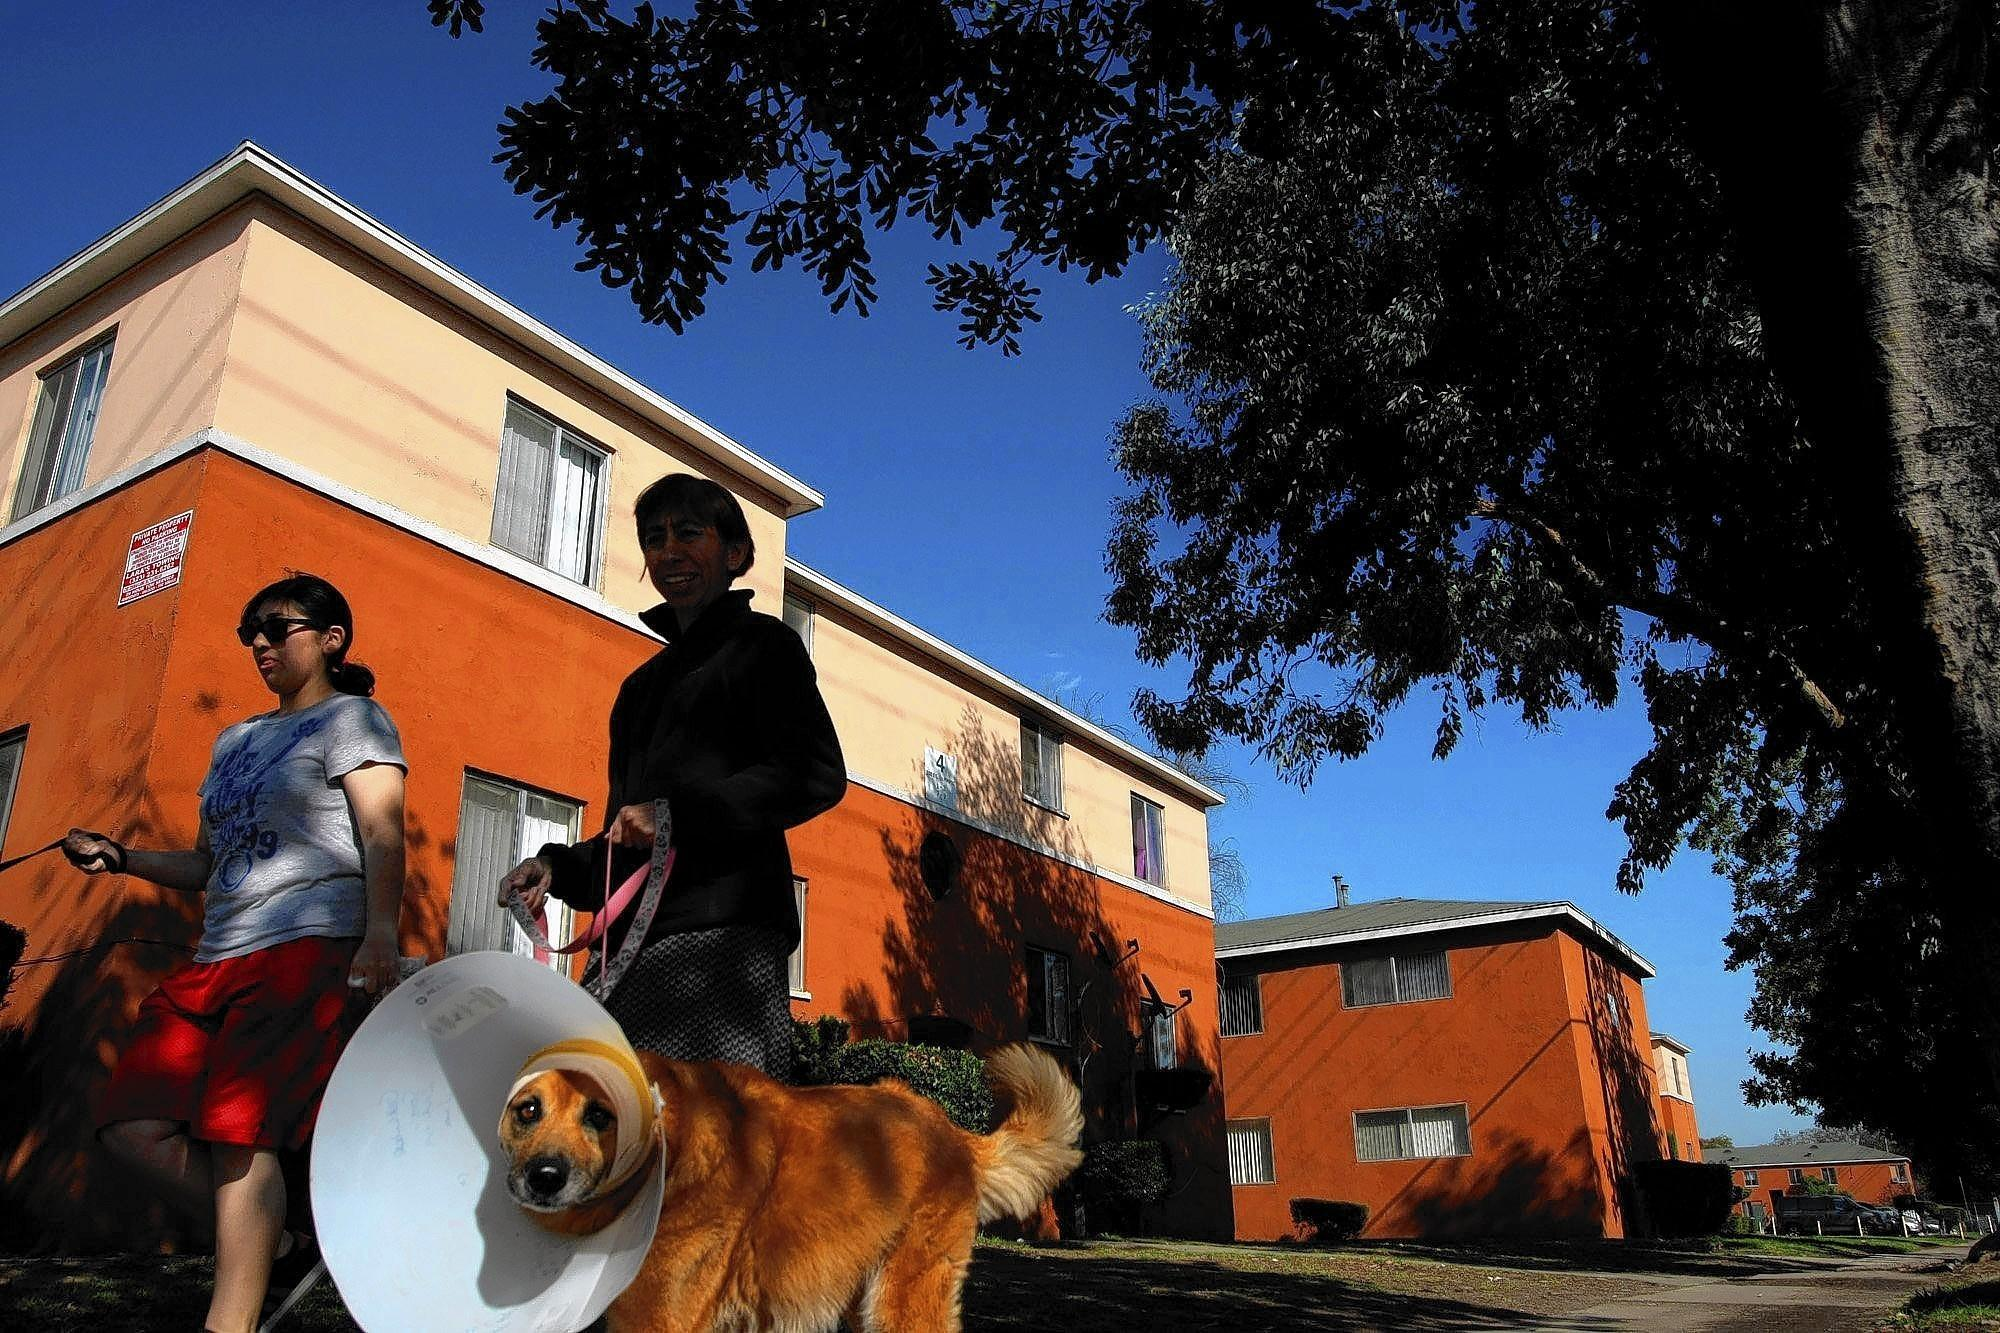 Women walk dogs in front of the Wyvernwood Garden Apartments in Boyle Heights. Built in 1939 and home to about 6,000 residents, the property is one of several considered endangered by the L.A. Conservancy.